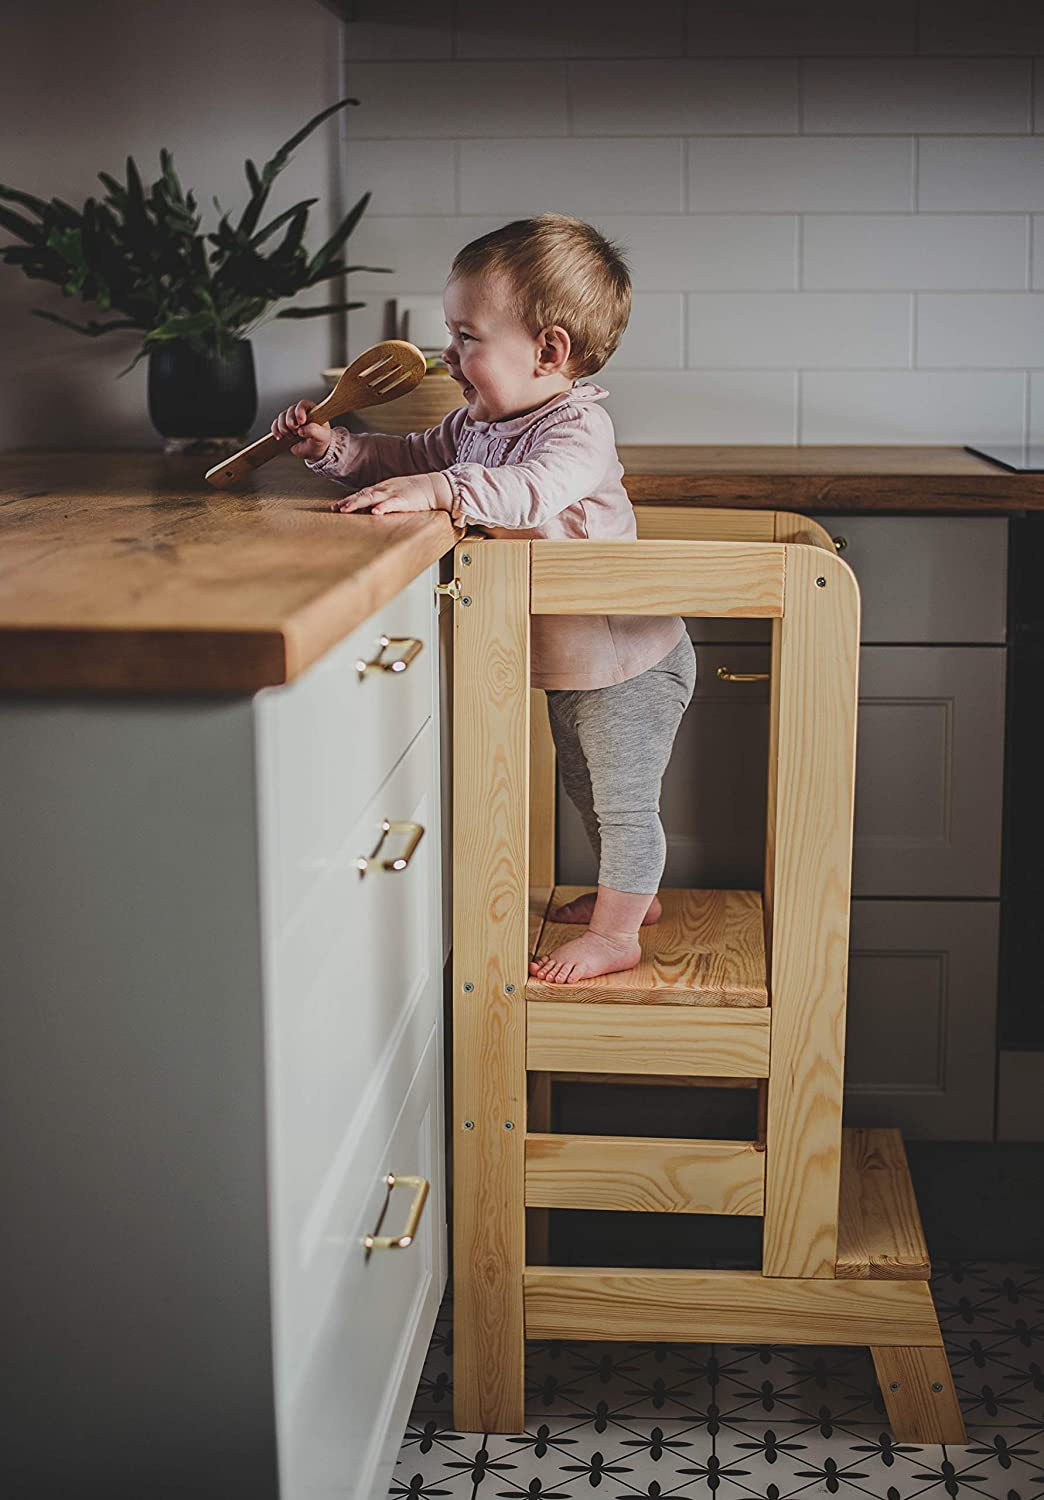 MeowBaby Kitchen Helper for Children Made in EU Wooden Montessori Learning Tower Natural